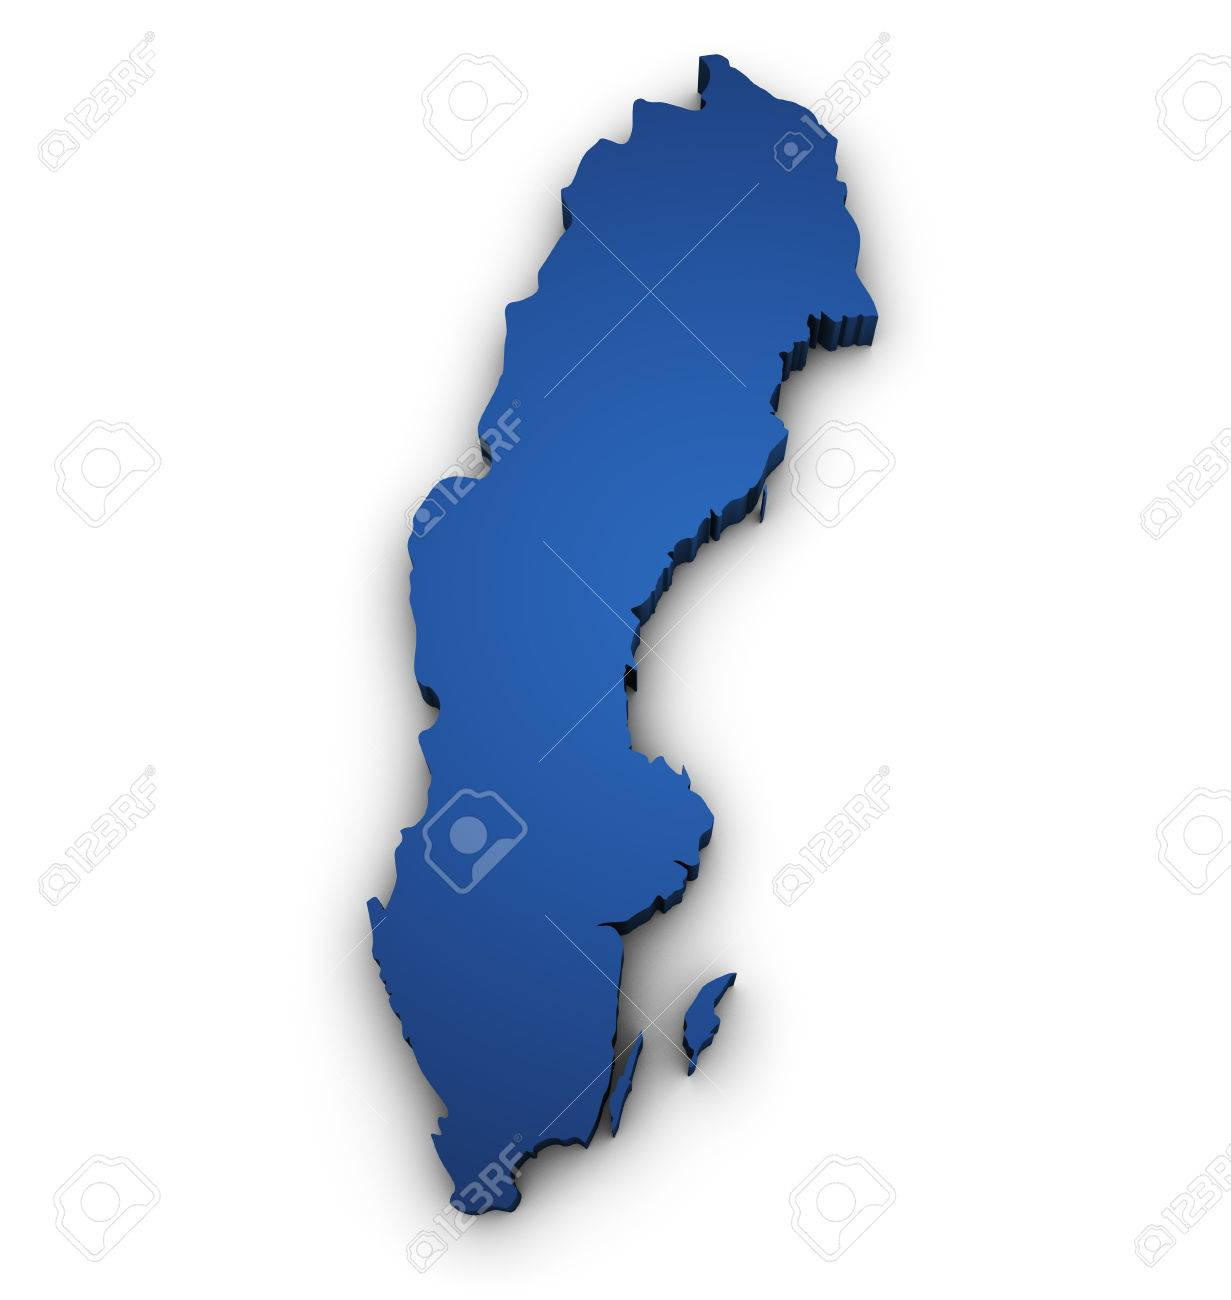 Shape D Of Sweden Map Colored In Blue And Isolated On White - Sweden map 3d